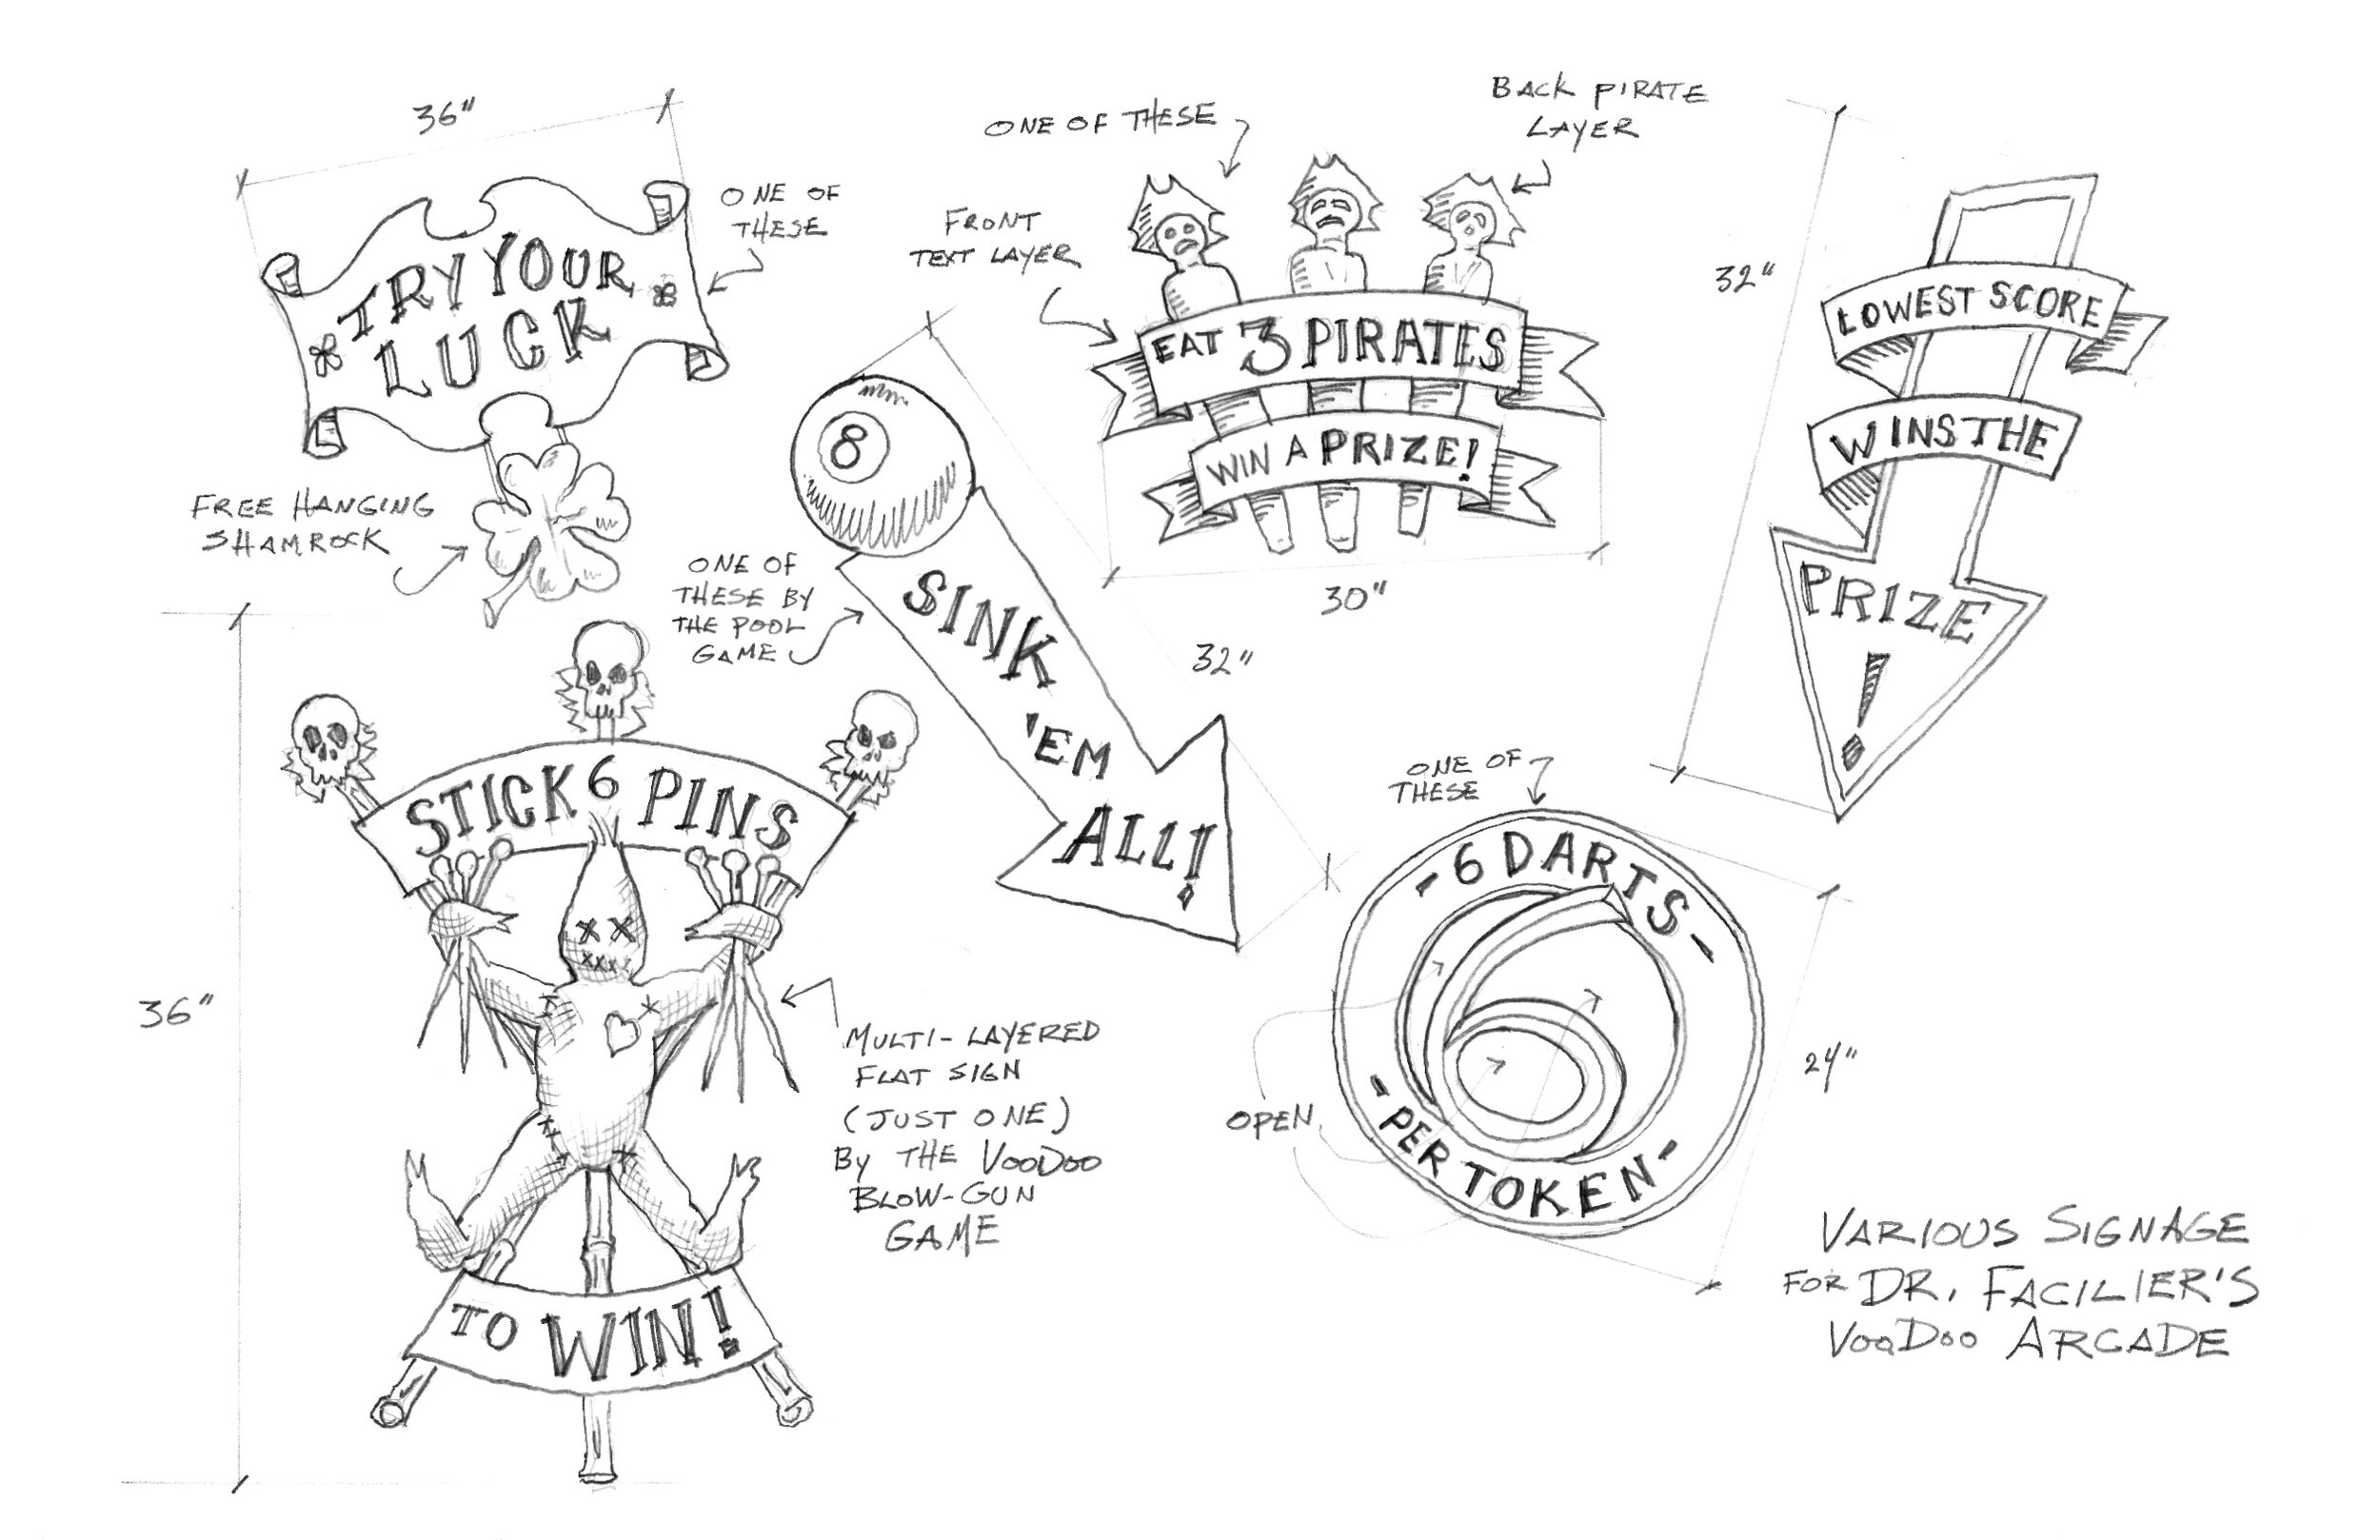 A sketch of various signs for Dr. Faciler's Voodoo arcade on the Isle of the Lost for Disney's Descendants 3.